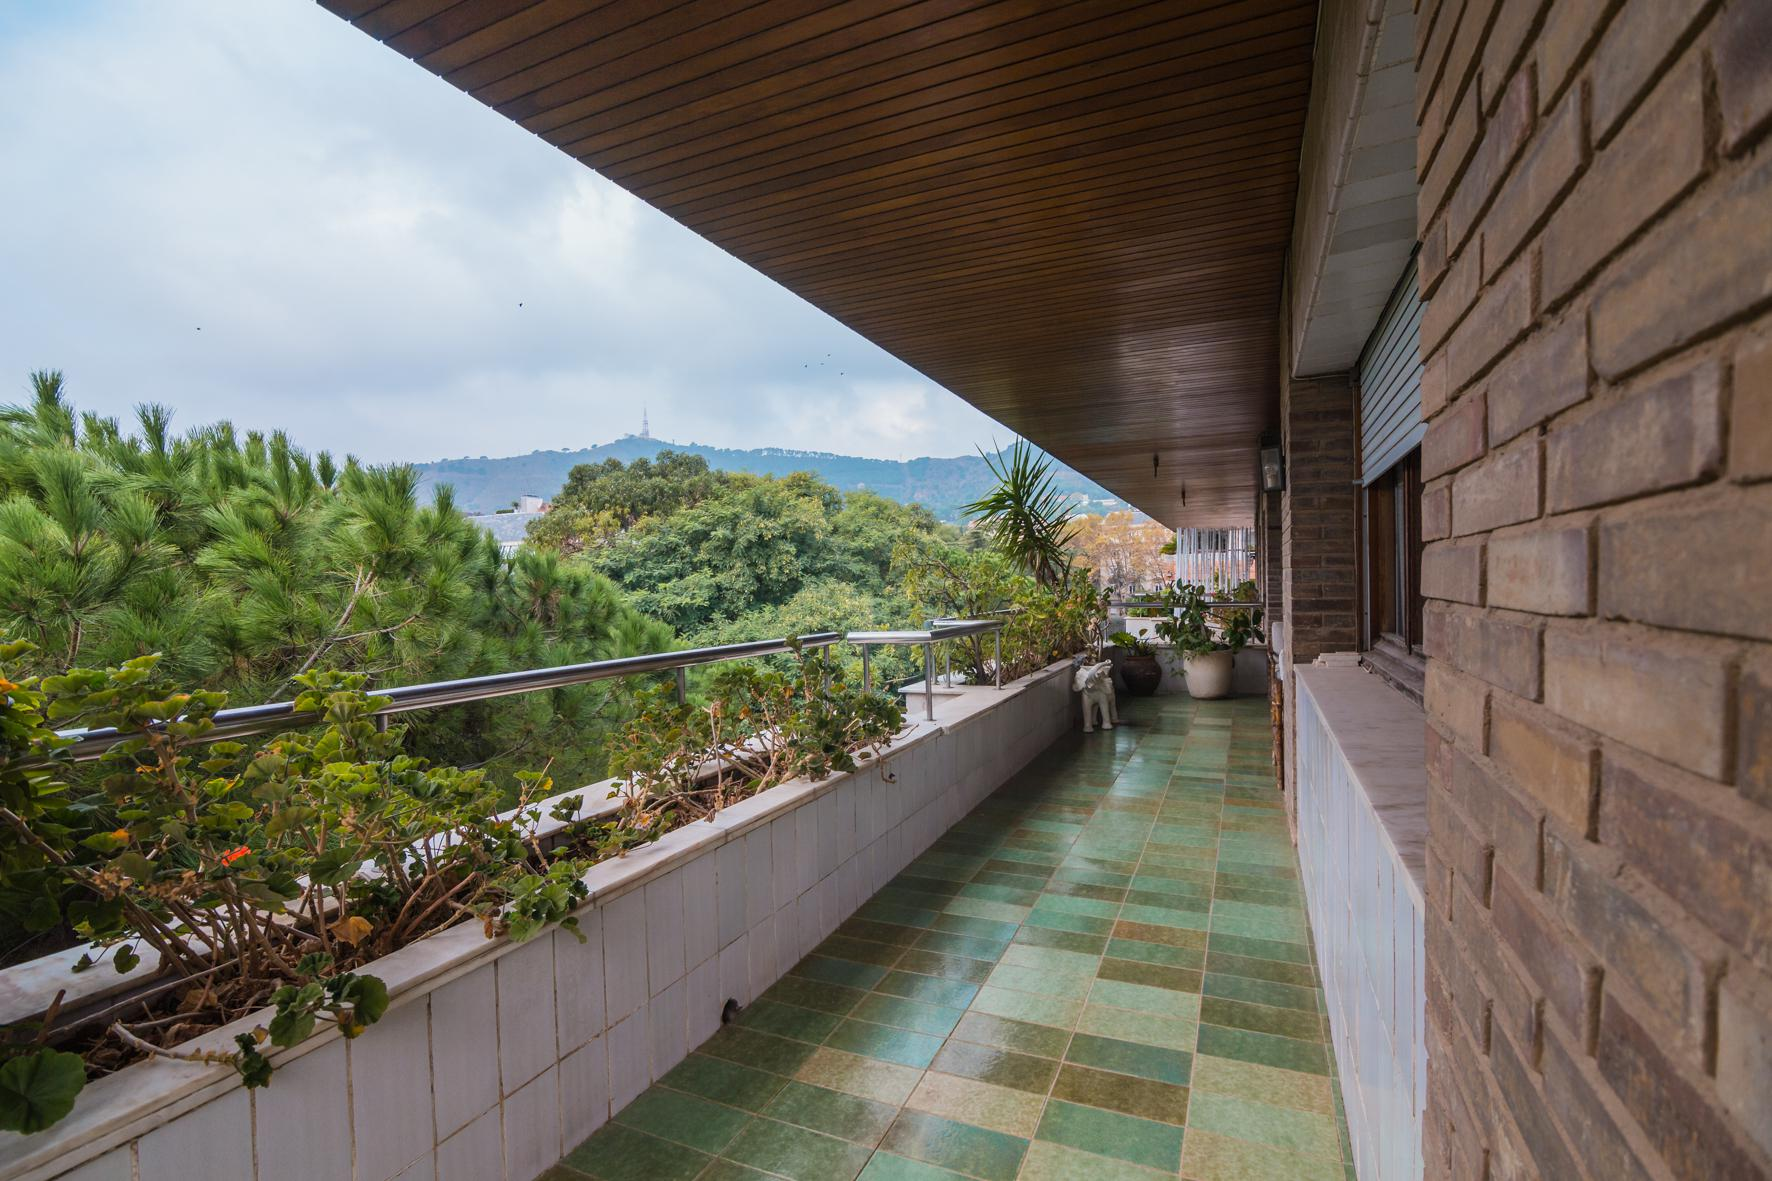 244103 Penthouse for sale in Les Corts, Pedralbes 15